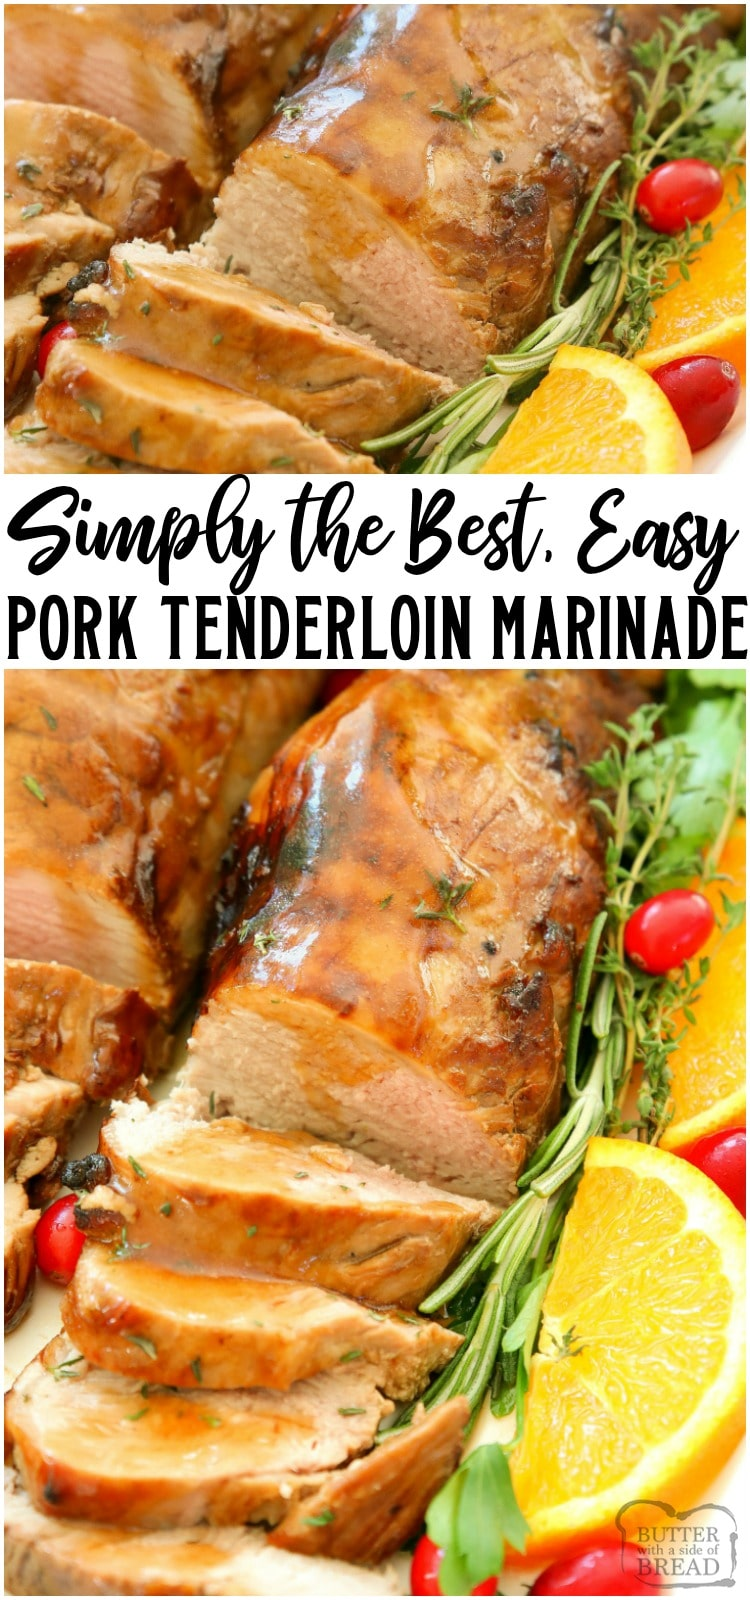 Holiday Roast Pork Tenderloin made EASY with this flavorful marinade! Simple festive pork dinner that looks elegant yet is SUPER EASY to make. The pork tenderloin marinade is just 5 ingredients, including a couple of cans of lemon lime soda!